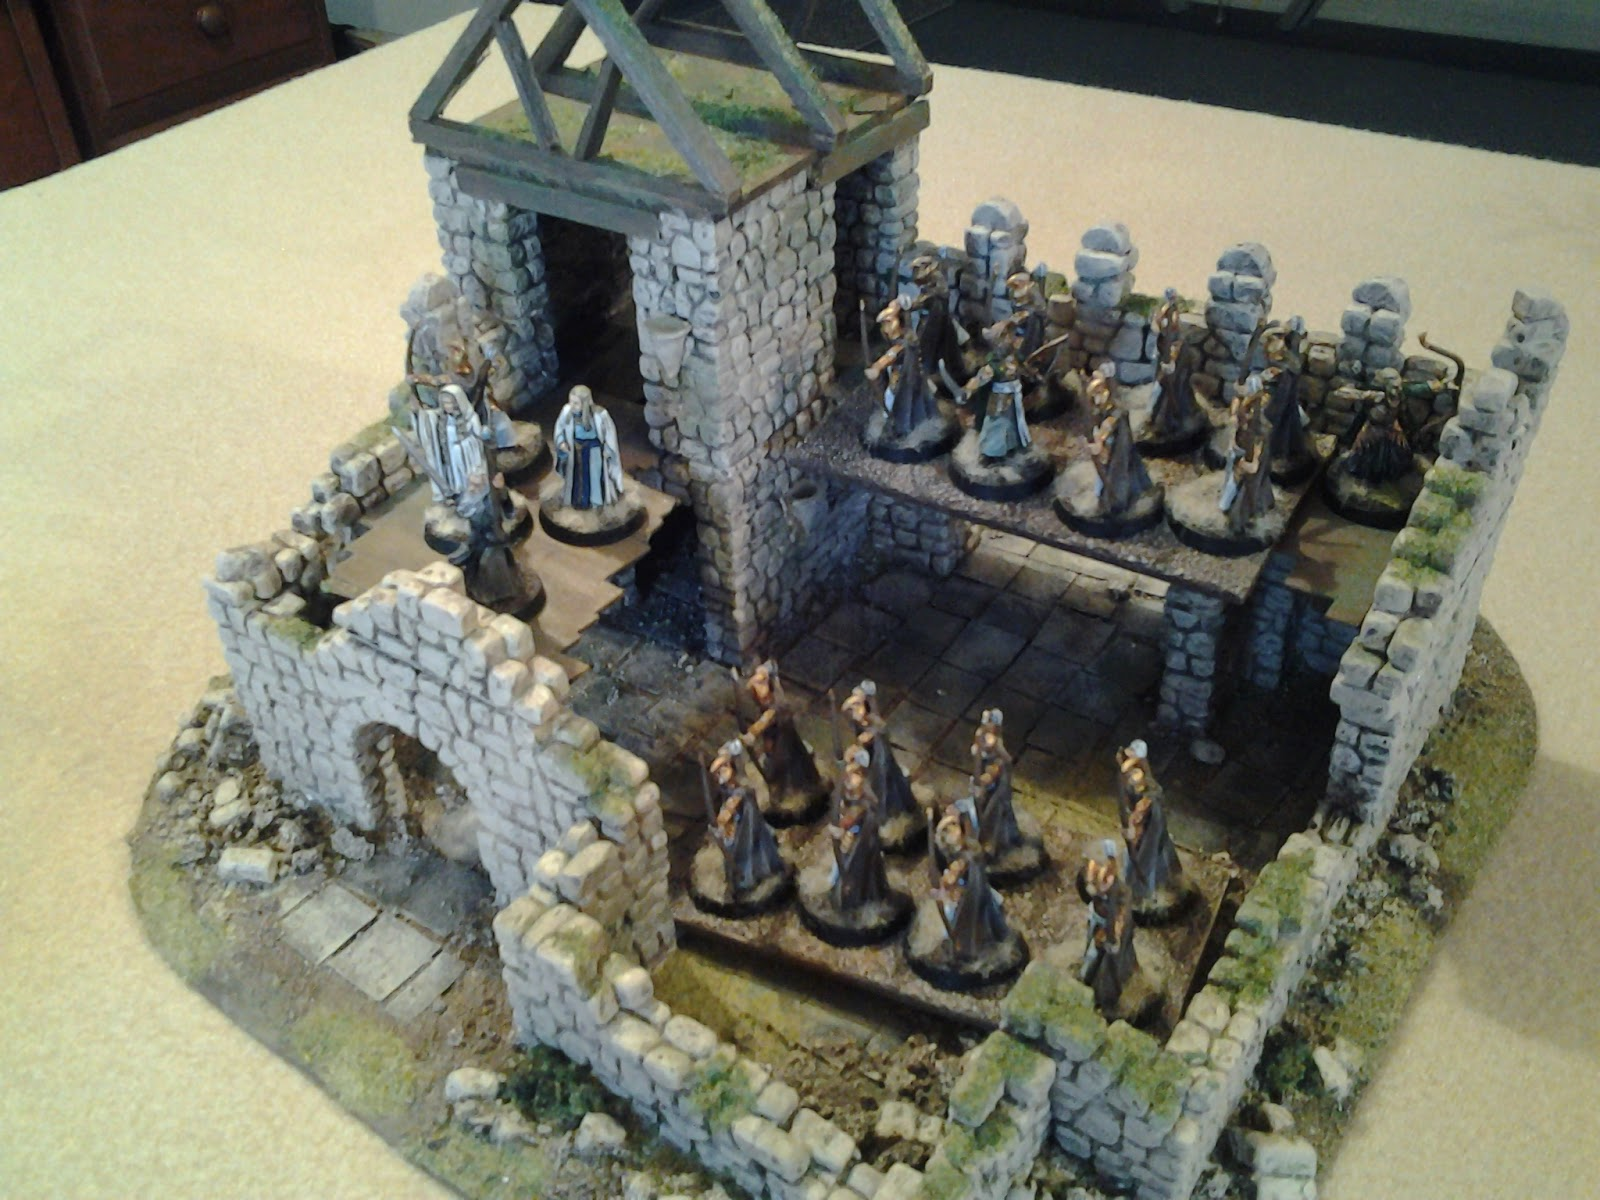 Lord Of The Rings Strategy Battle Game Terrain